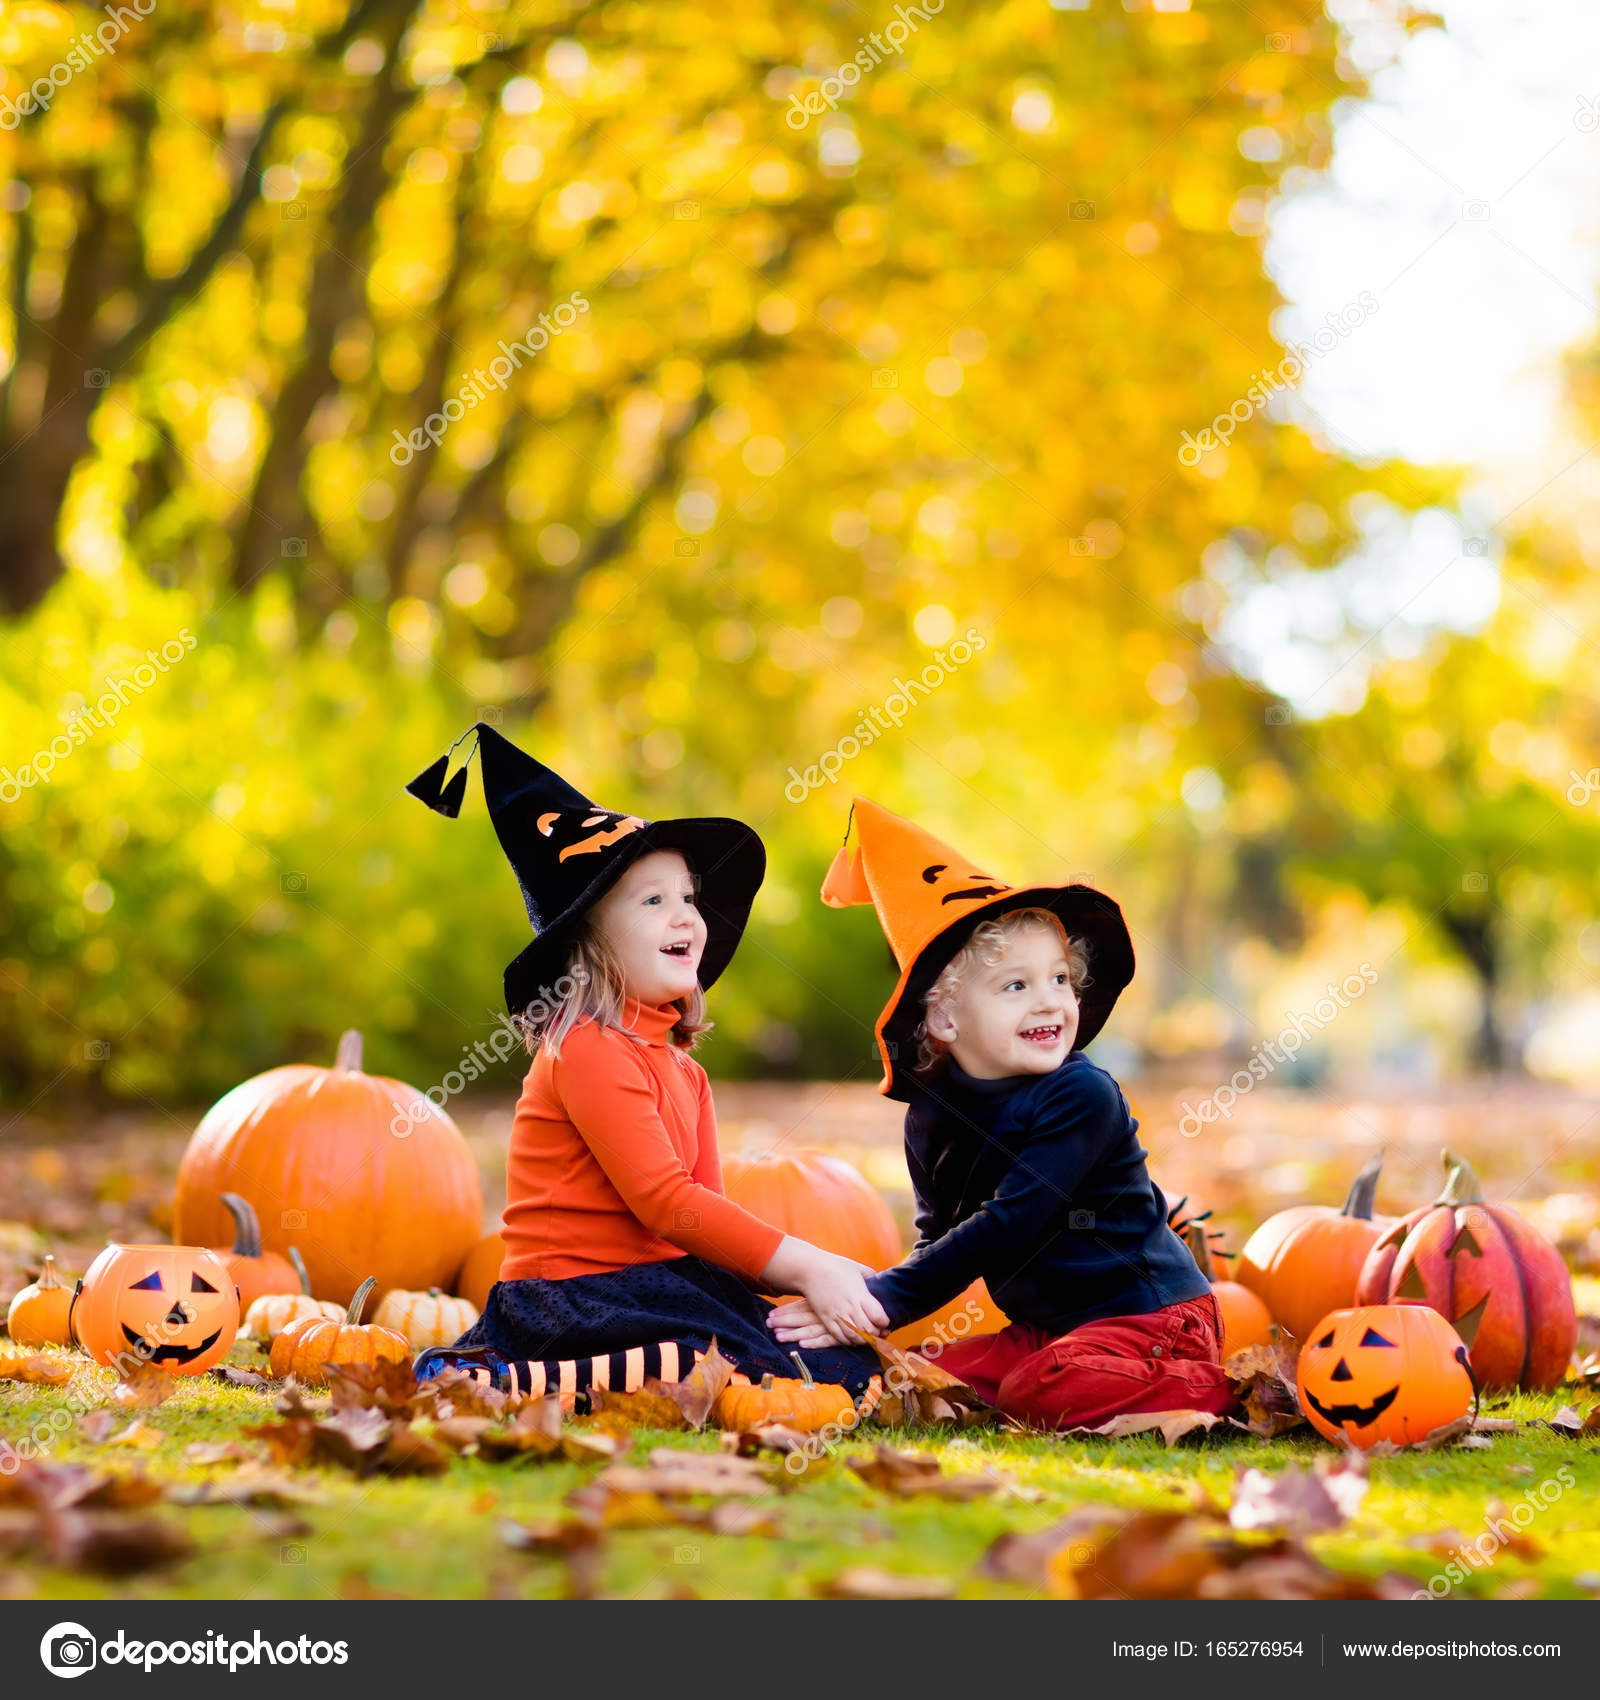 children in black and orange witch costume and hat play with pumpkin and spider in autumn park on halloween kids trick or treat